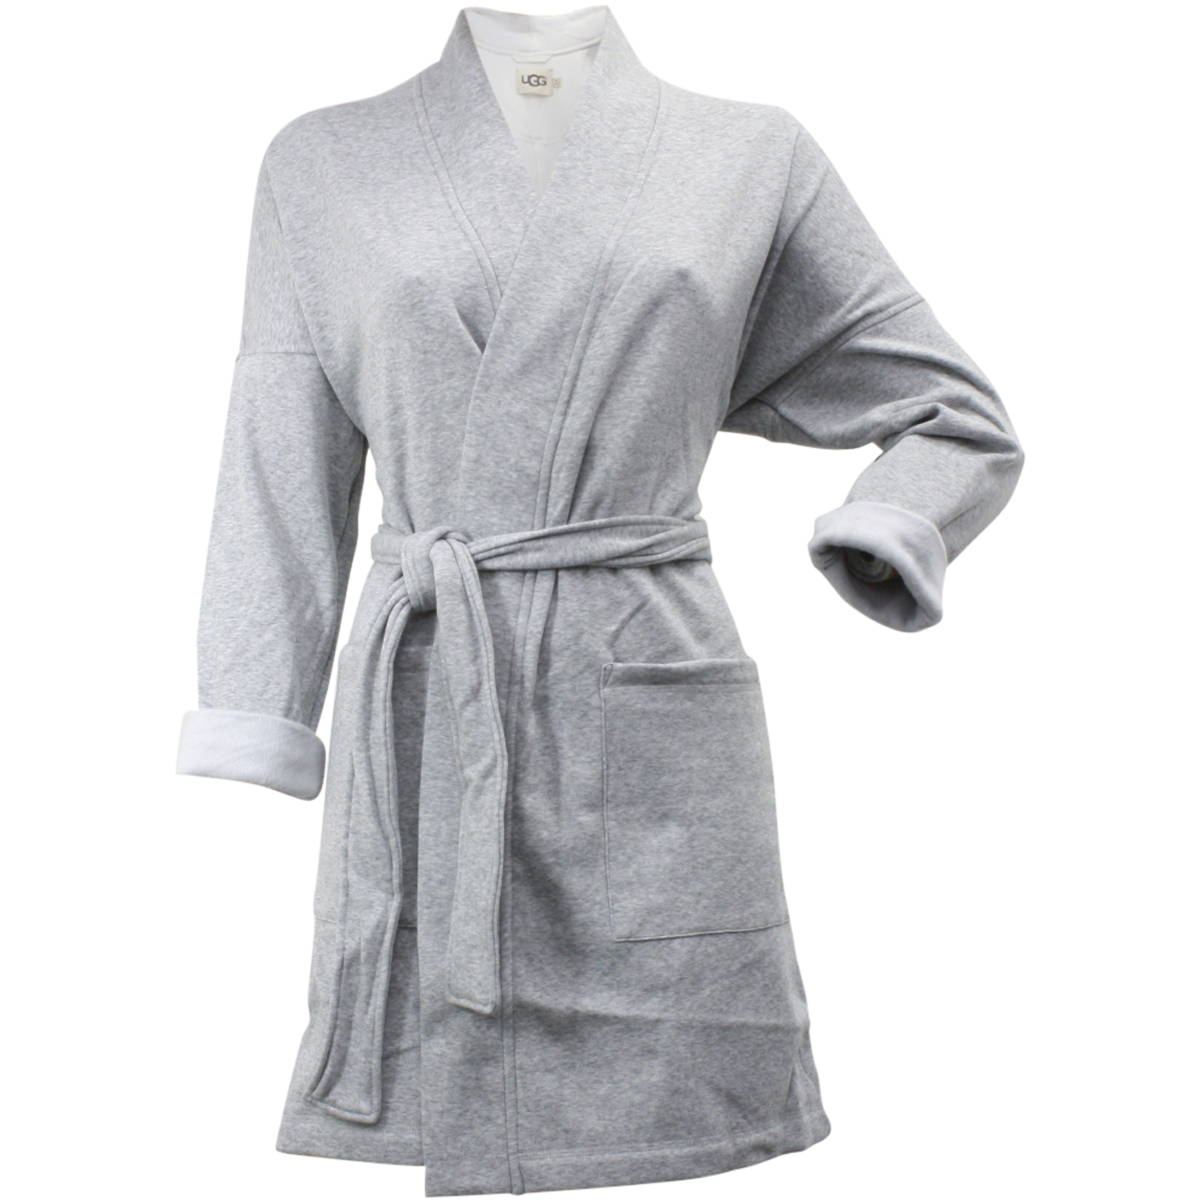 b7cc20bda8 Ugg Women s Braelyn Relaxed Fit Seal Heather Fleece Lined Robe